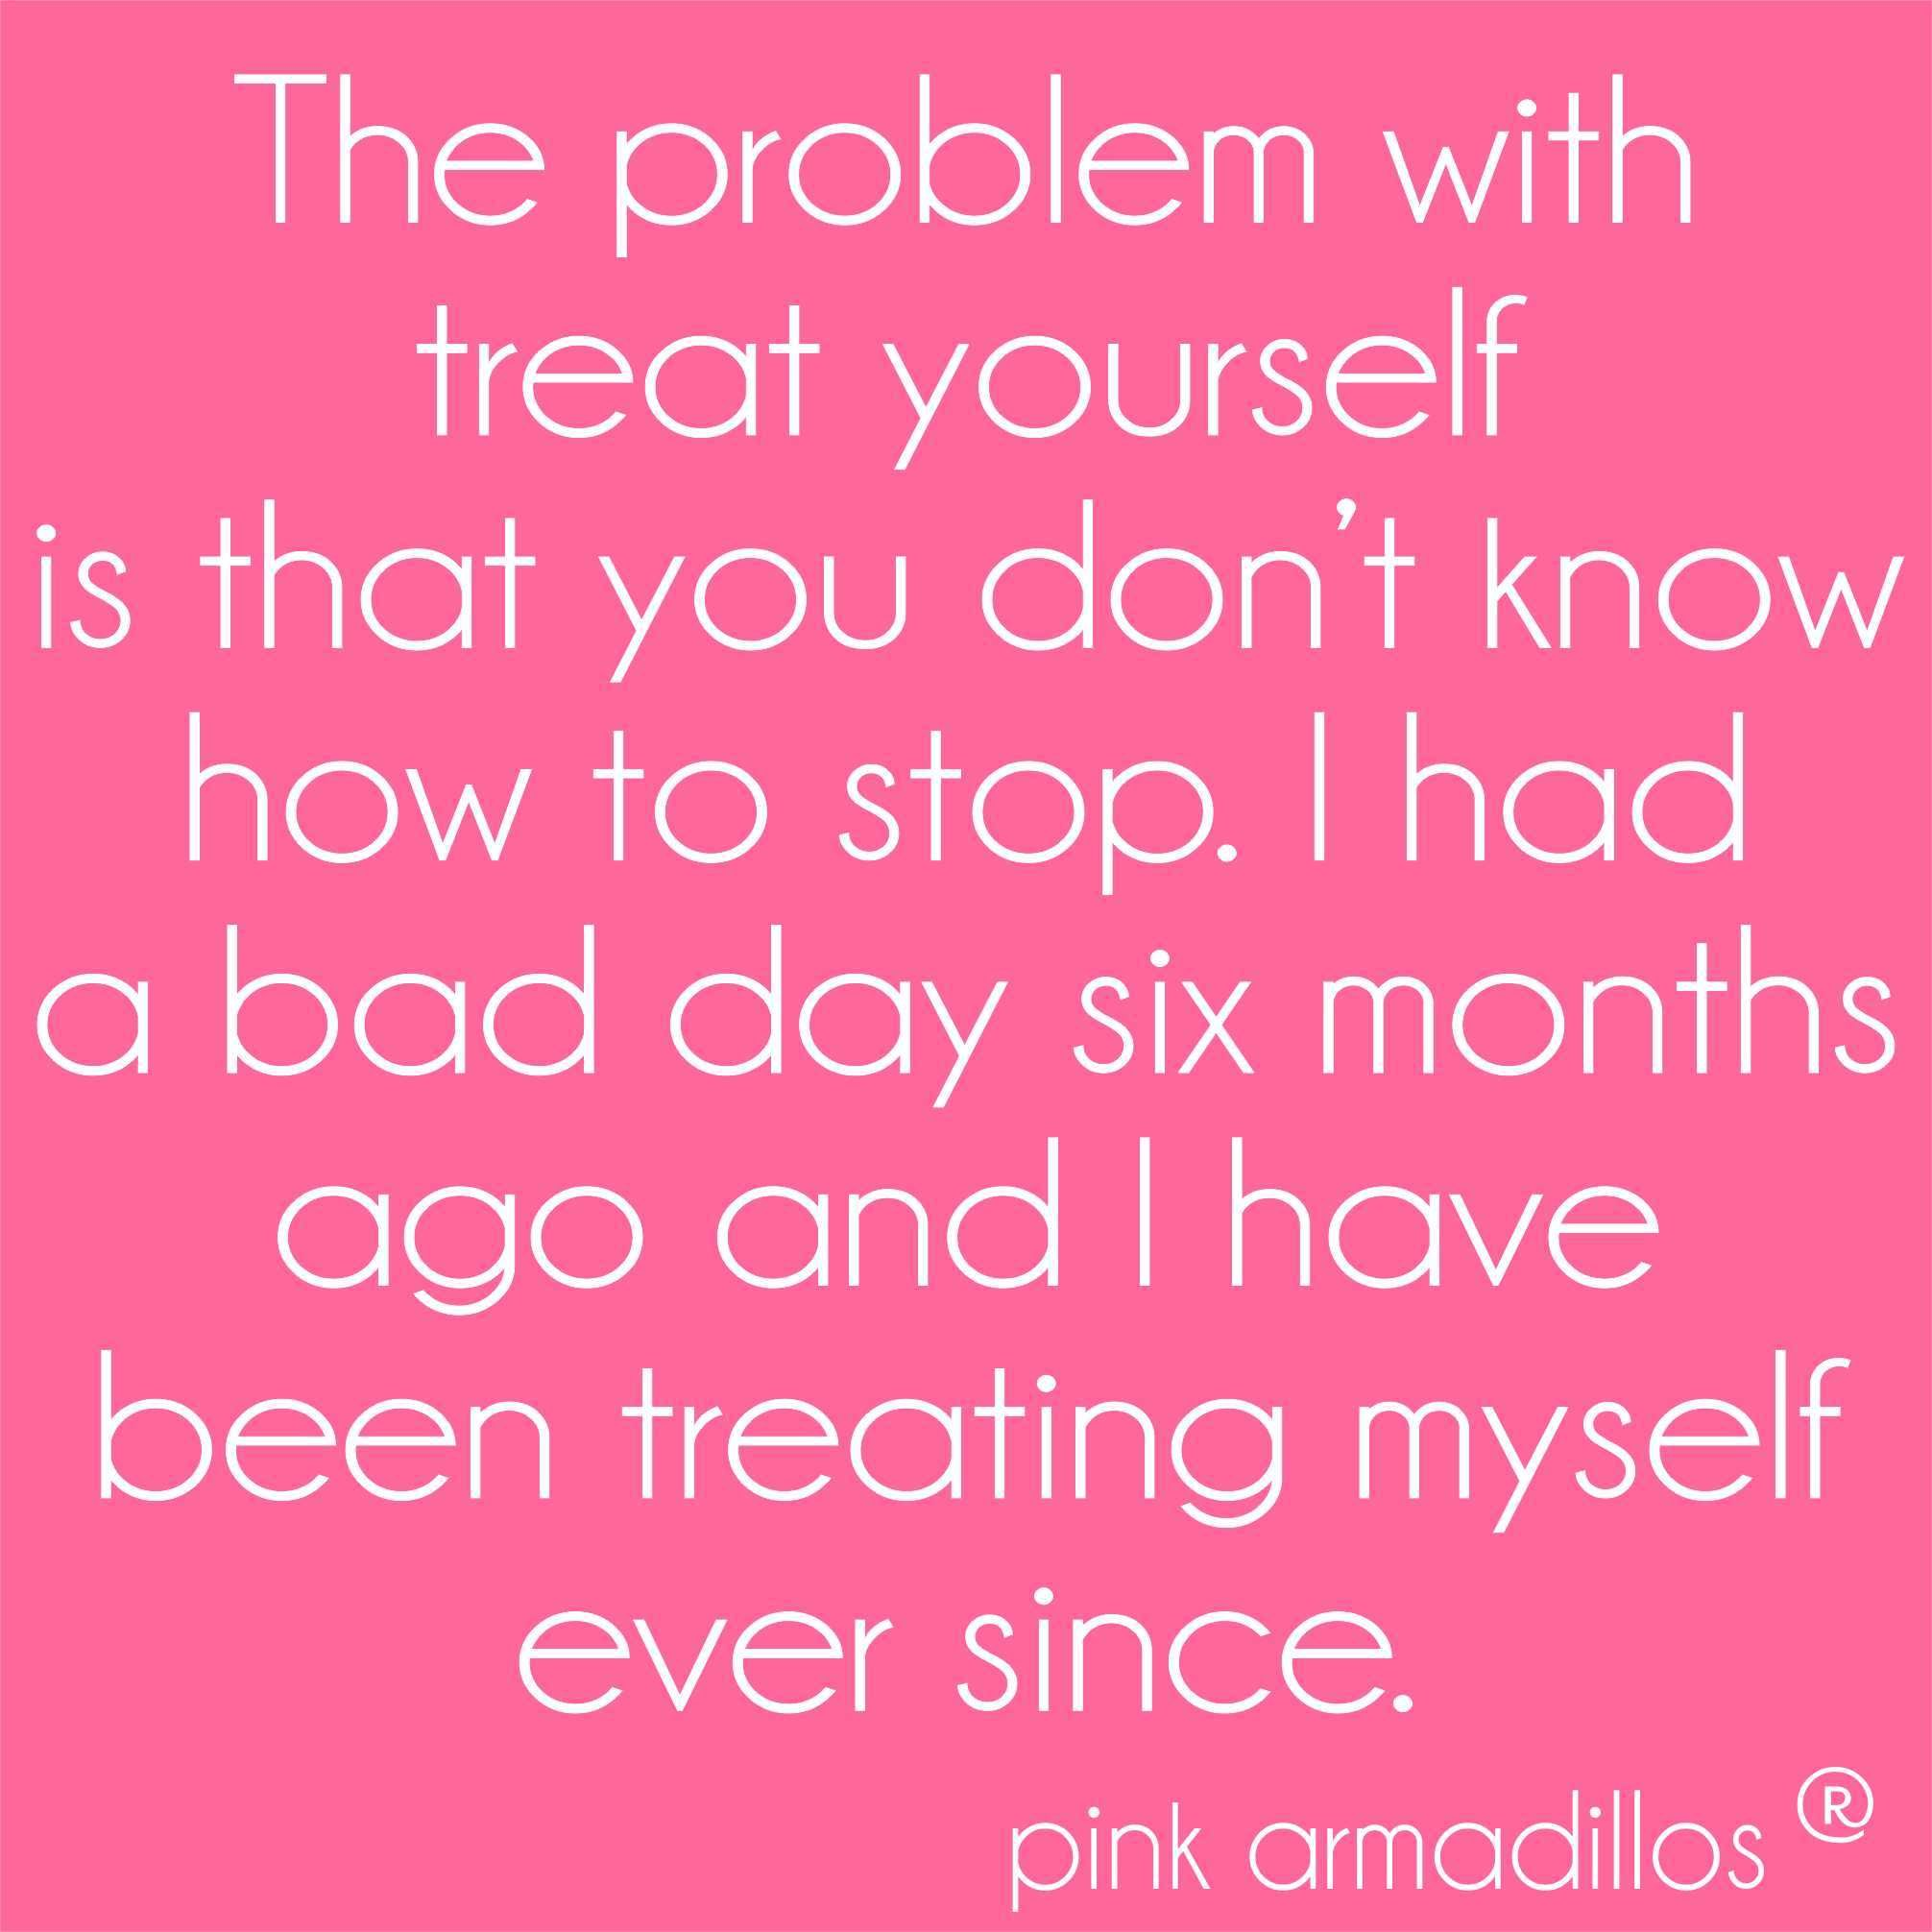 The Problem With Treat Yourself Pinkarmadillos Treatyoself Funny Having A Bad Day Cute Quotes Lol So True